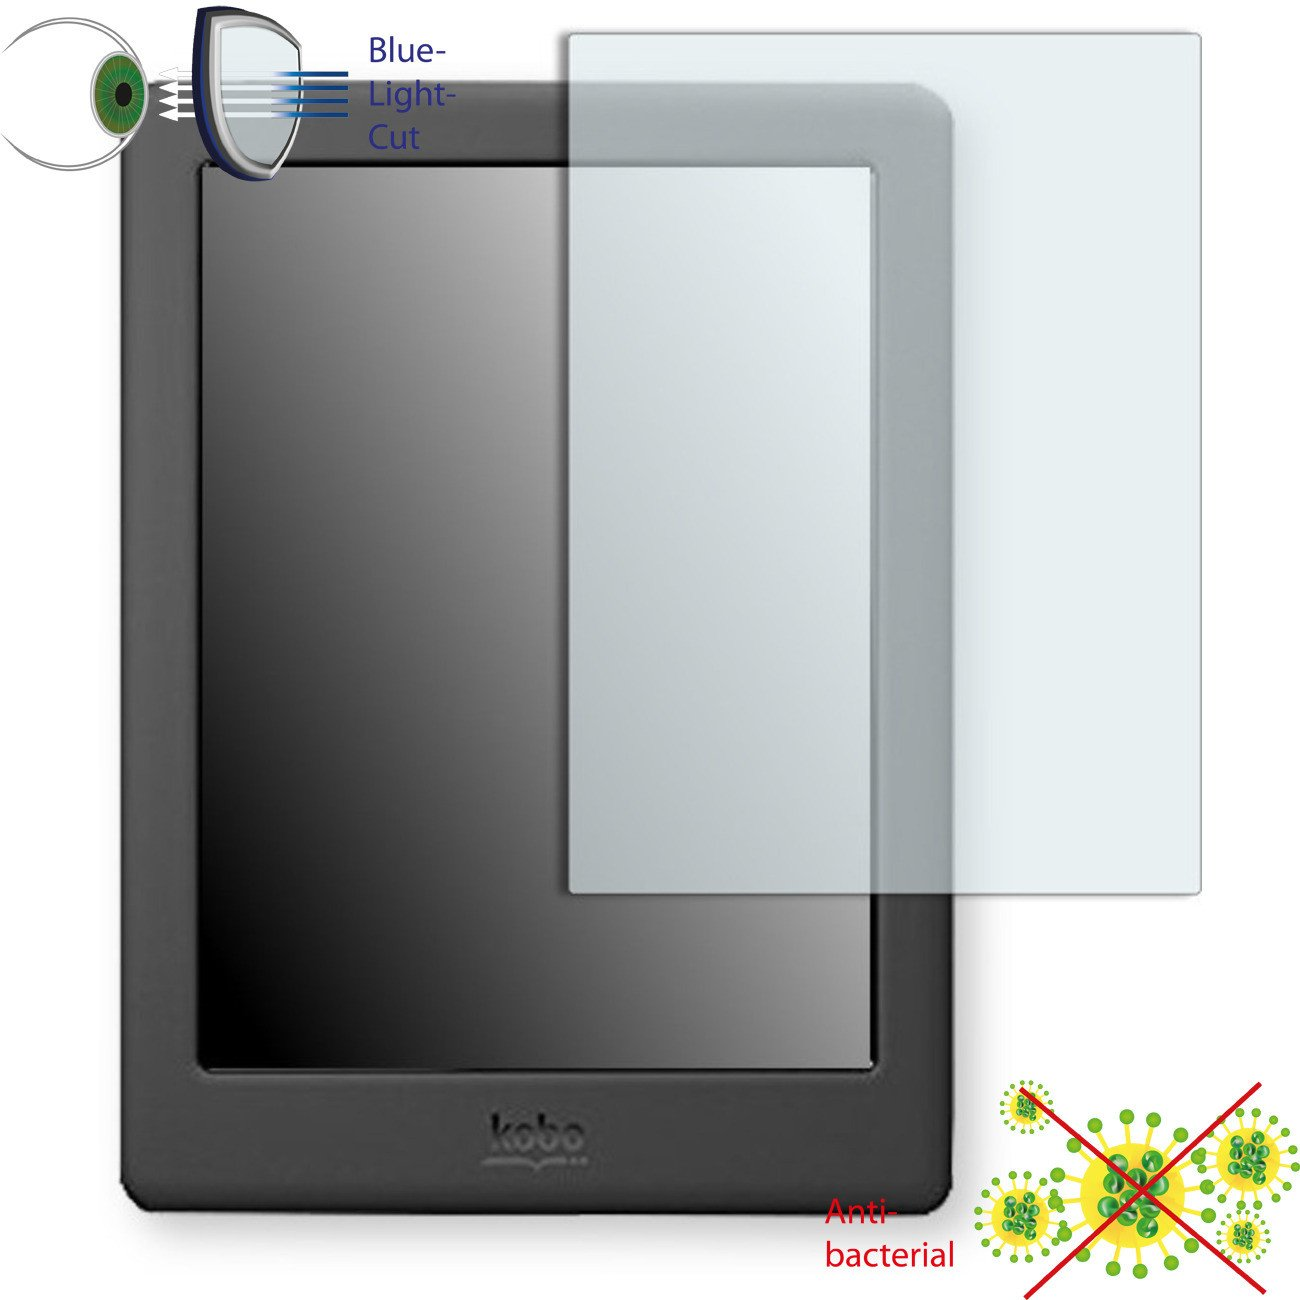 1 x DISAGU ClearScreen screen protection film for Kobo Glo HD antibacterial, BlueLight filter protective film #dh6116